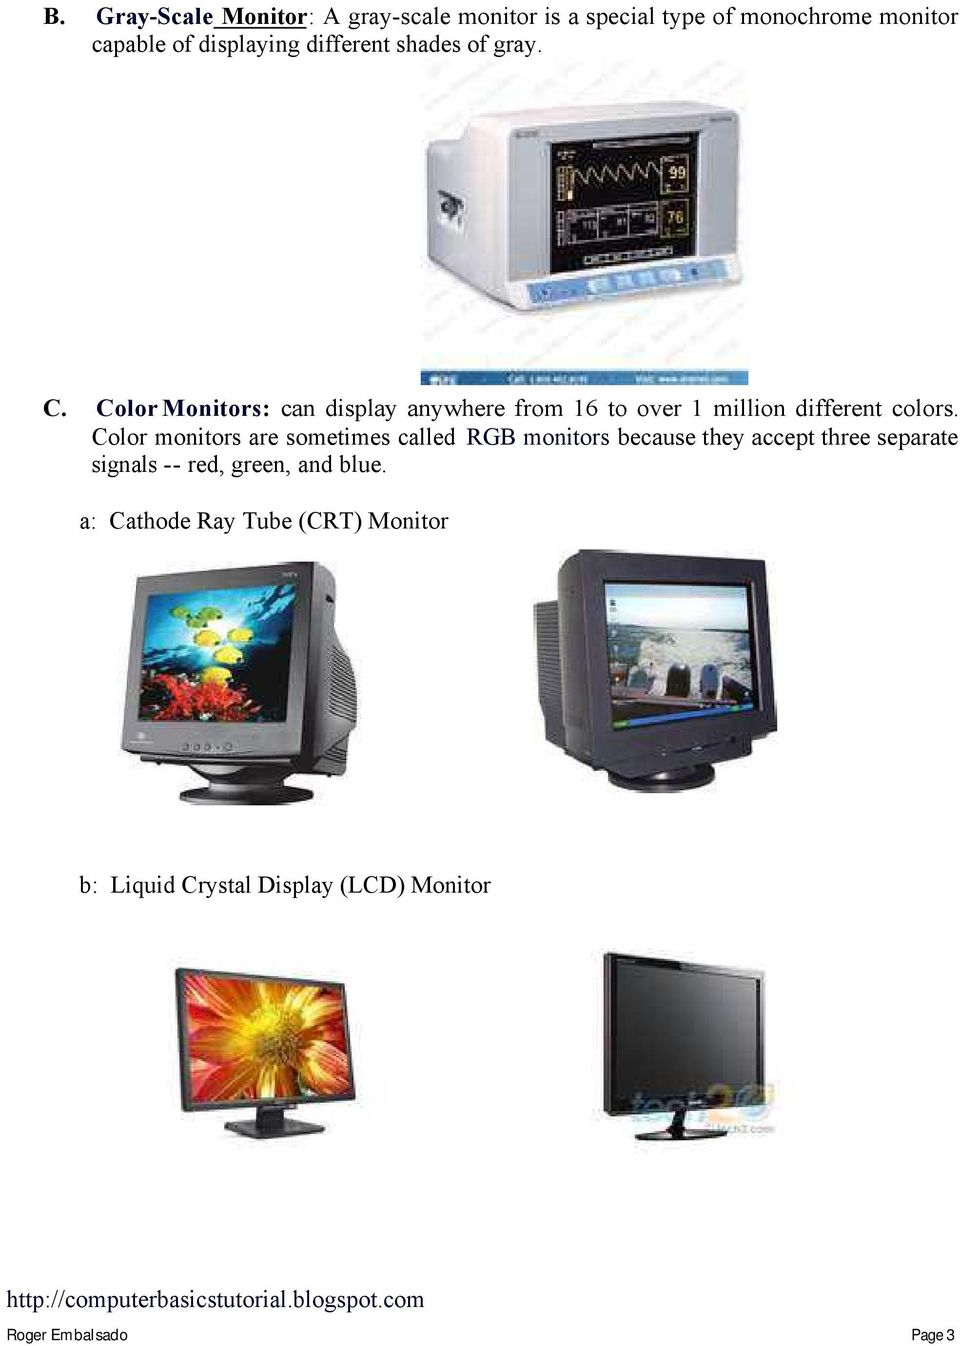 Color Monitors: can display anywhere from 16 to over 1 million different colors.